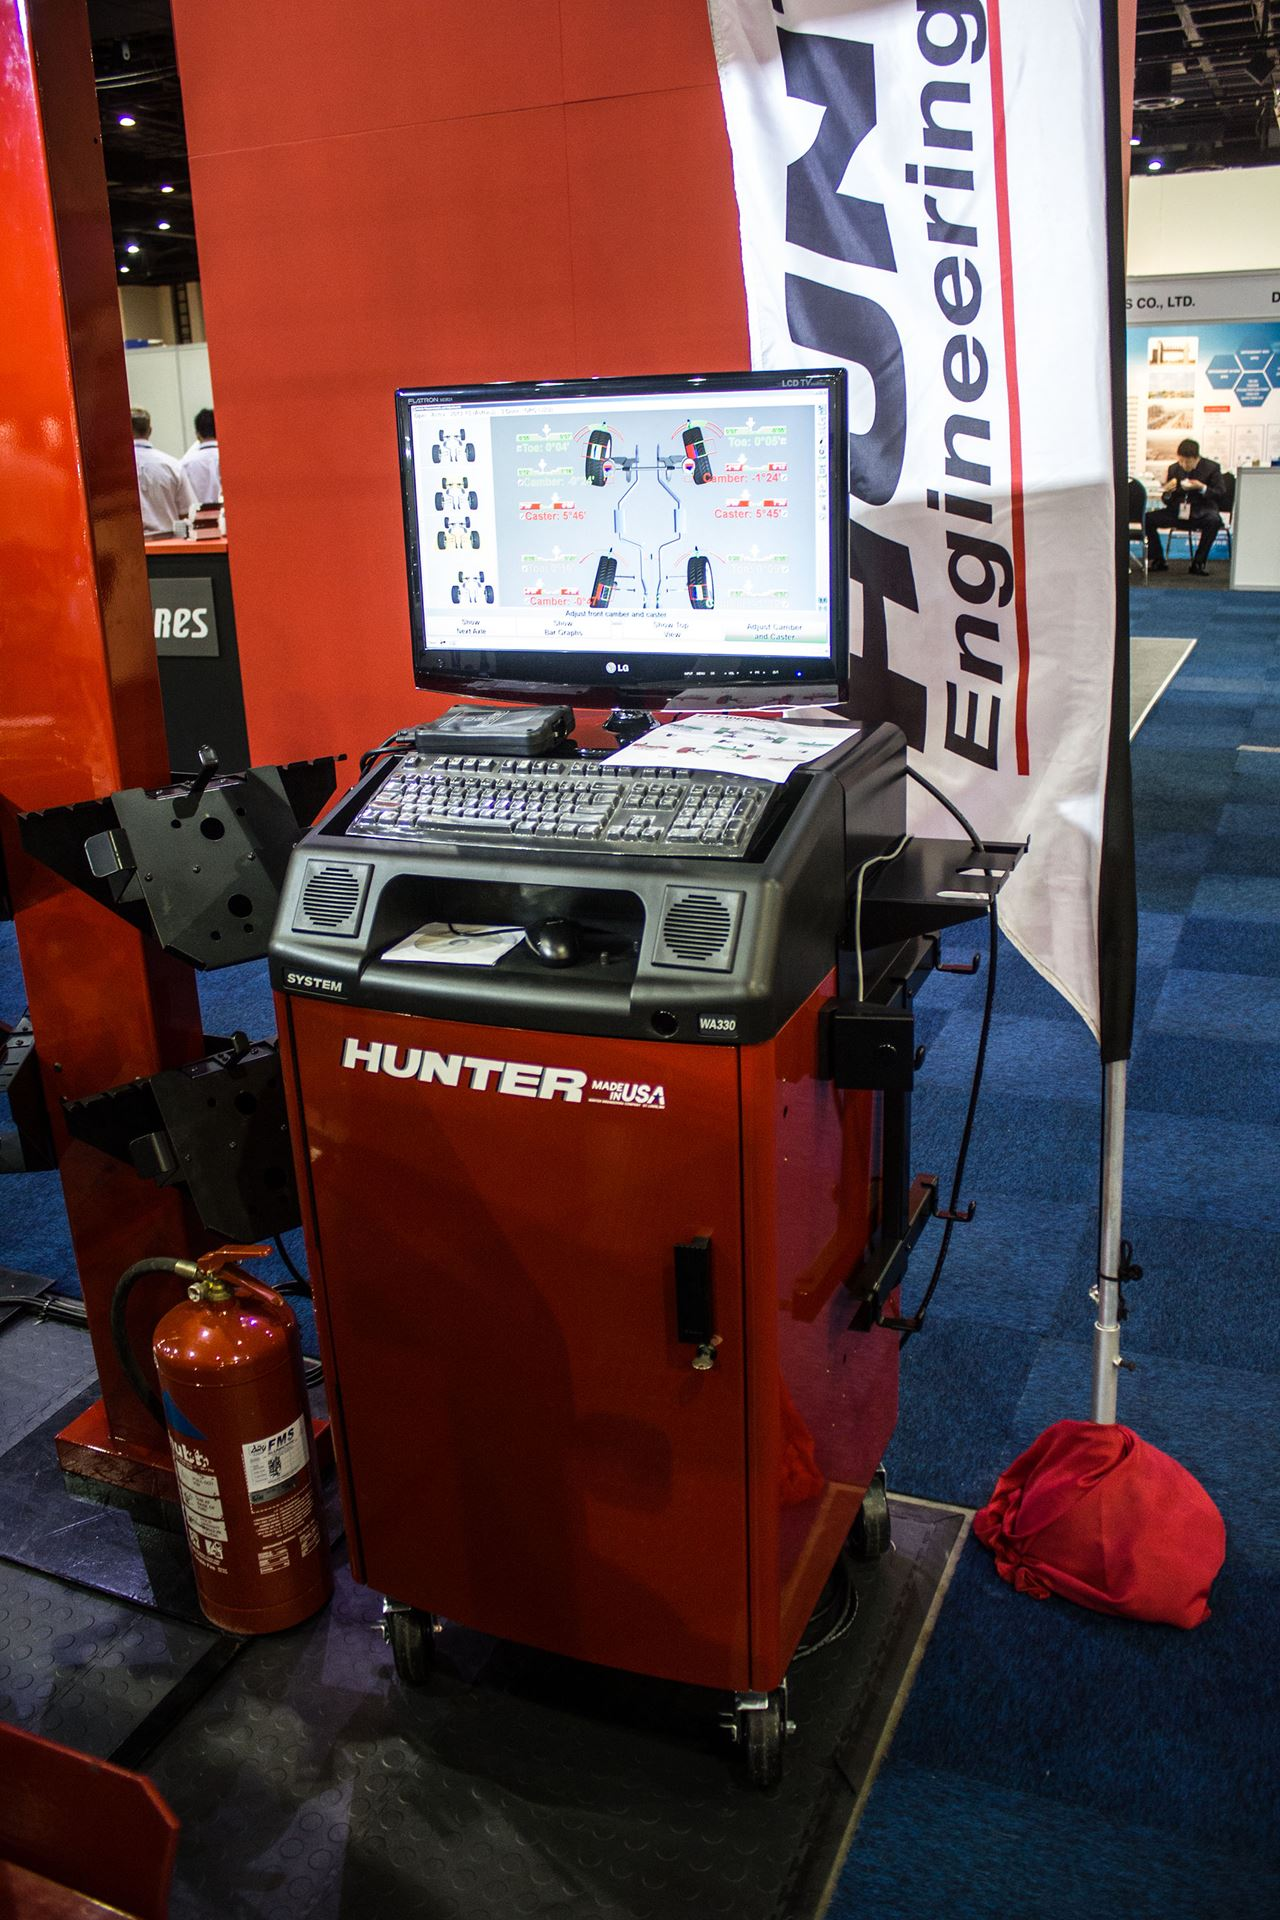 Tyre-Expo-South-Africa-2014-Hunter-05